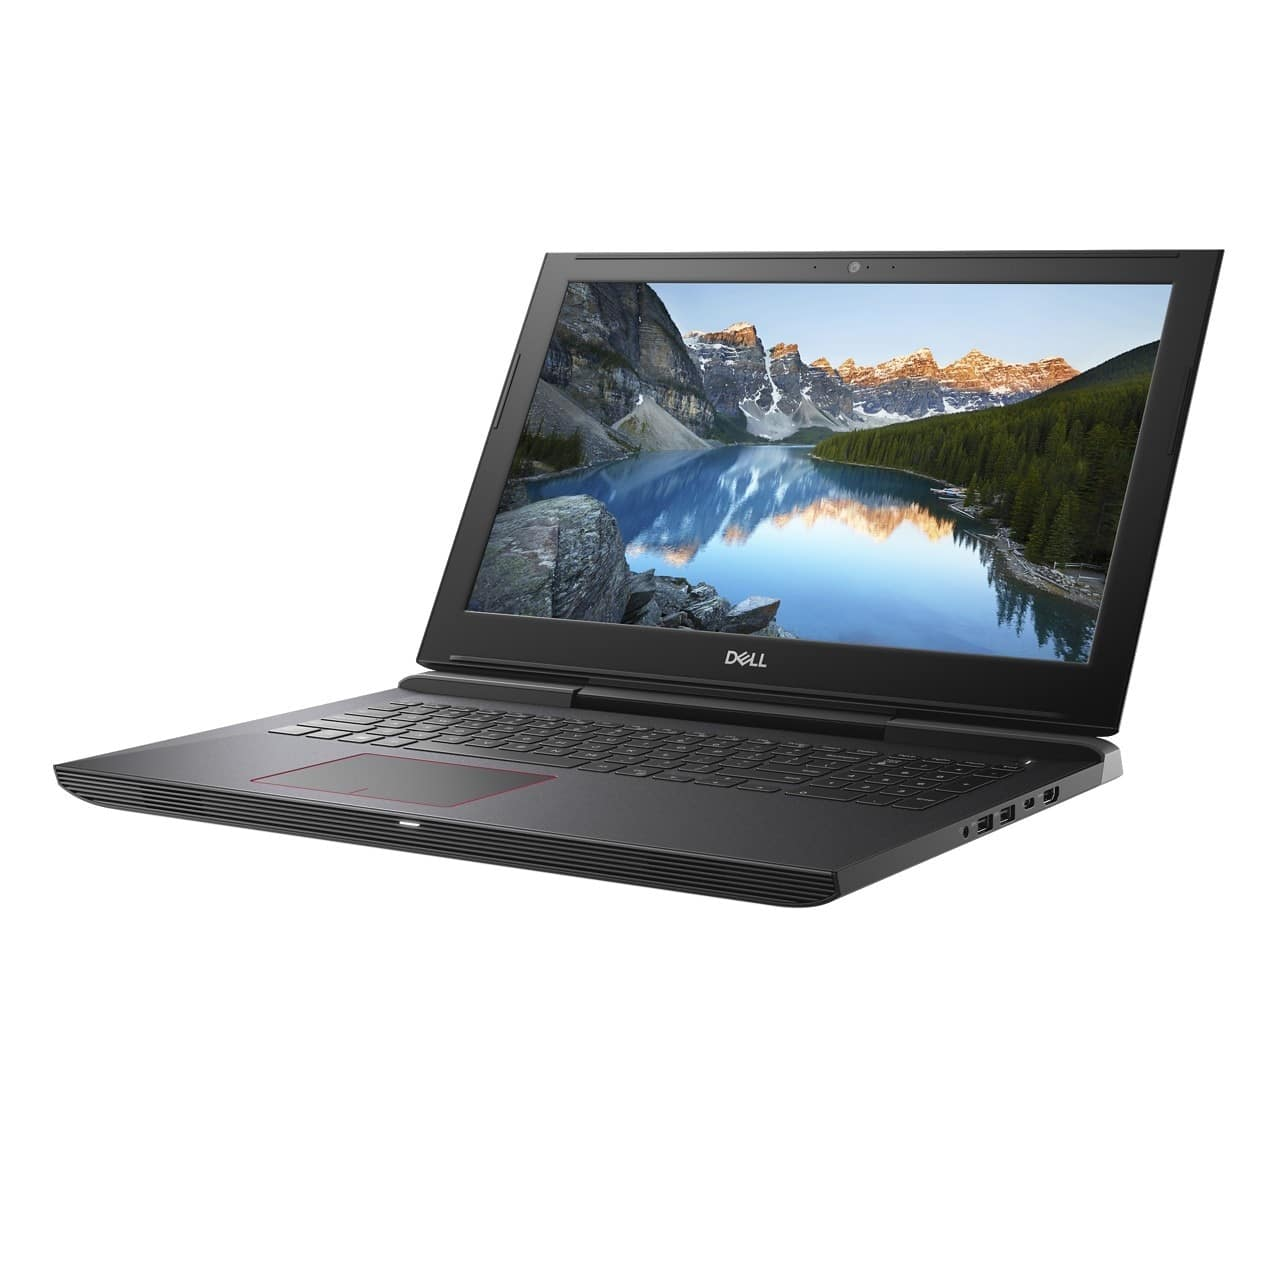 Dell 15% off back today only